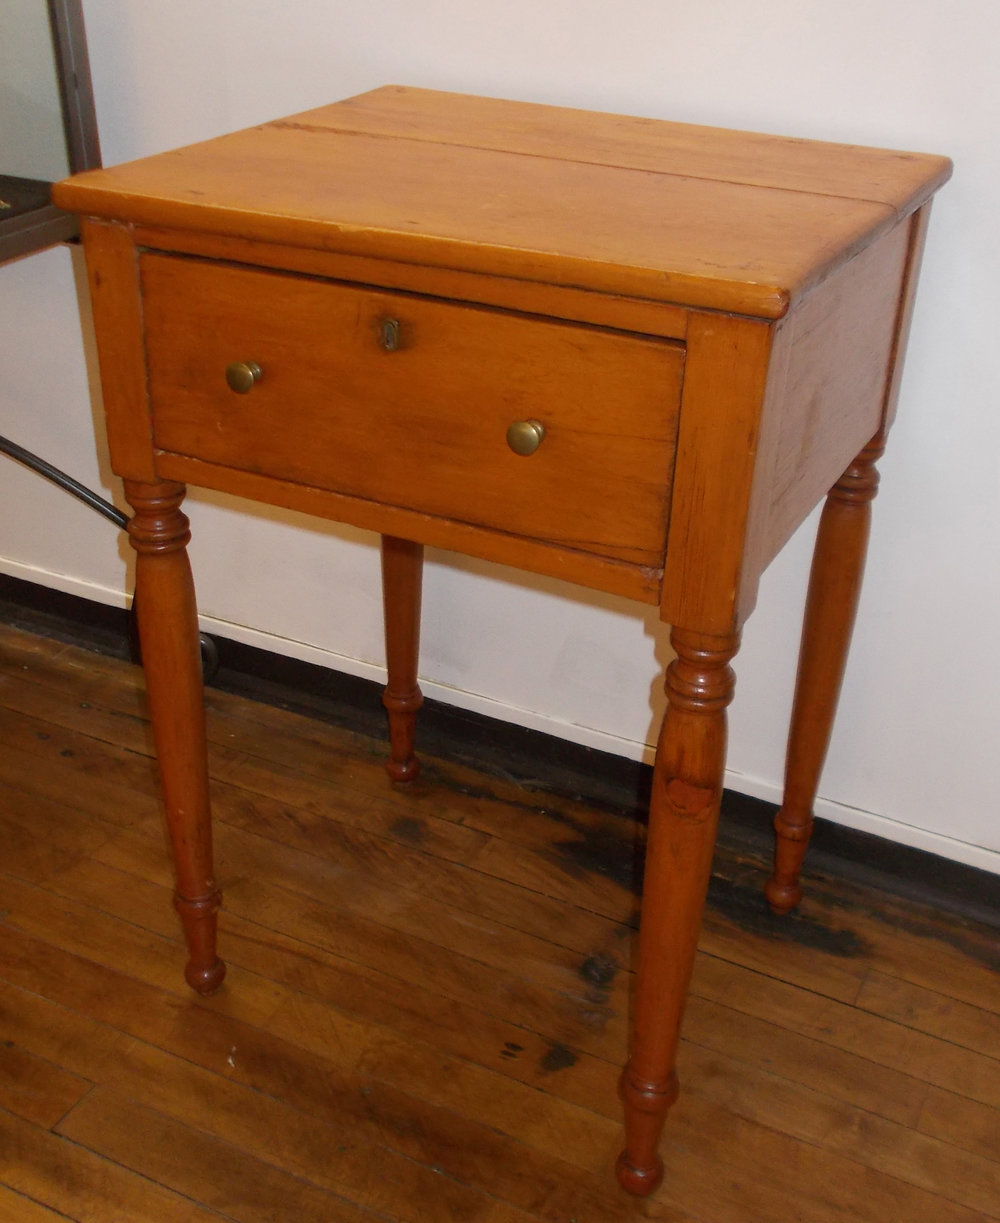 CHERRY TABLE29 INCHES HIGH